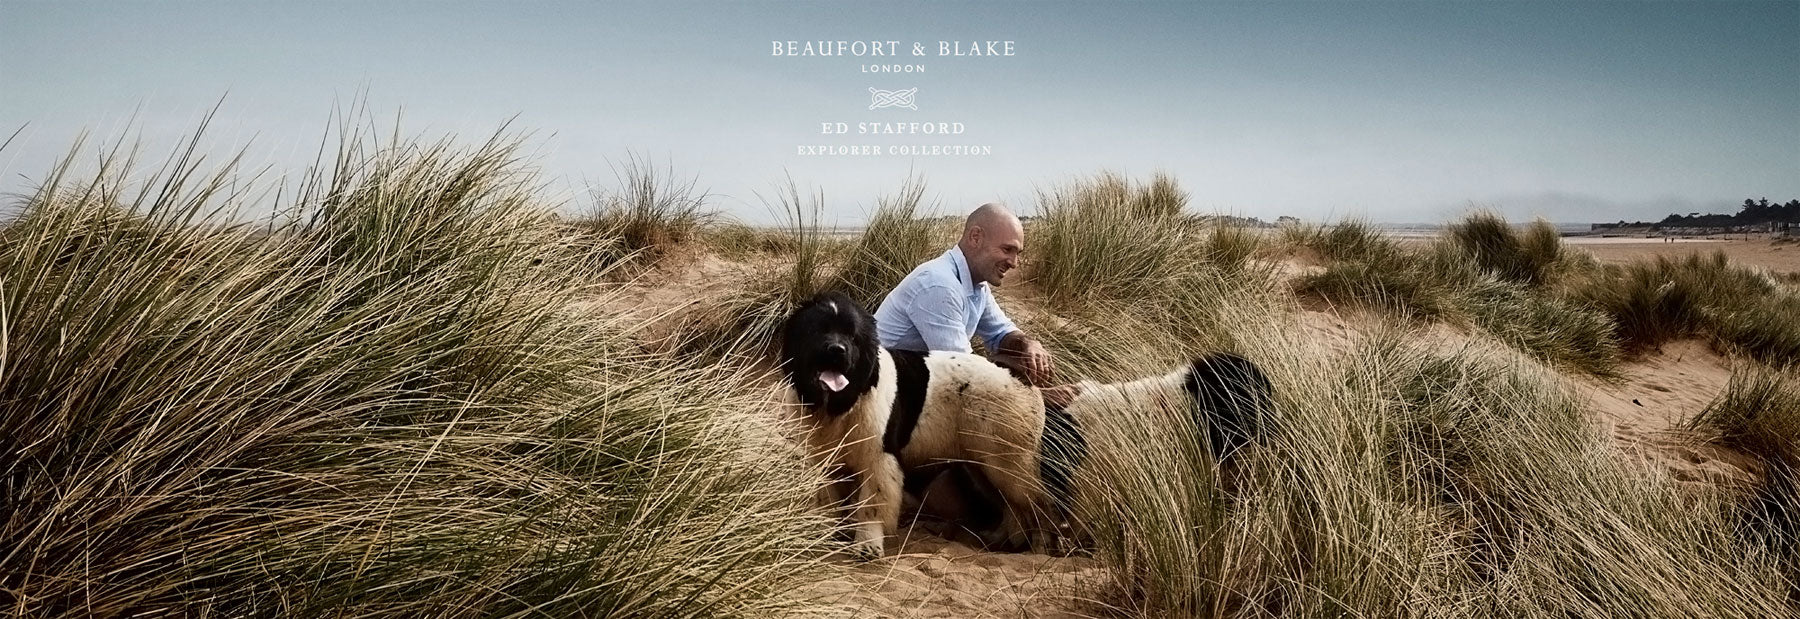 Ed Stafford Explorer Collection shirt Beaufort and Blake